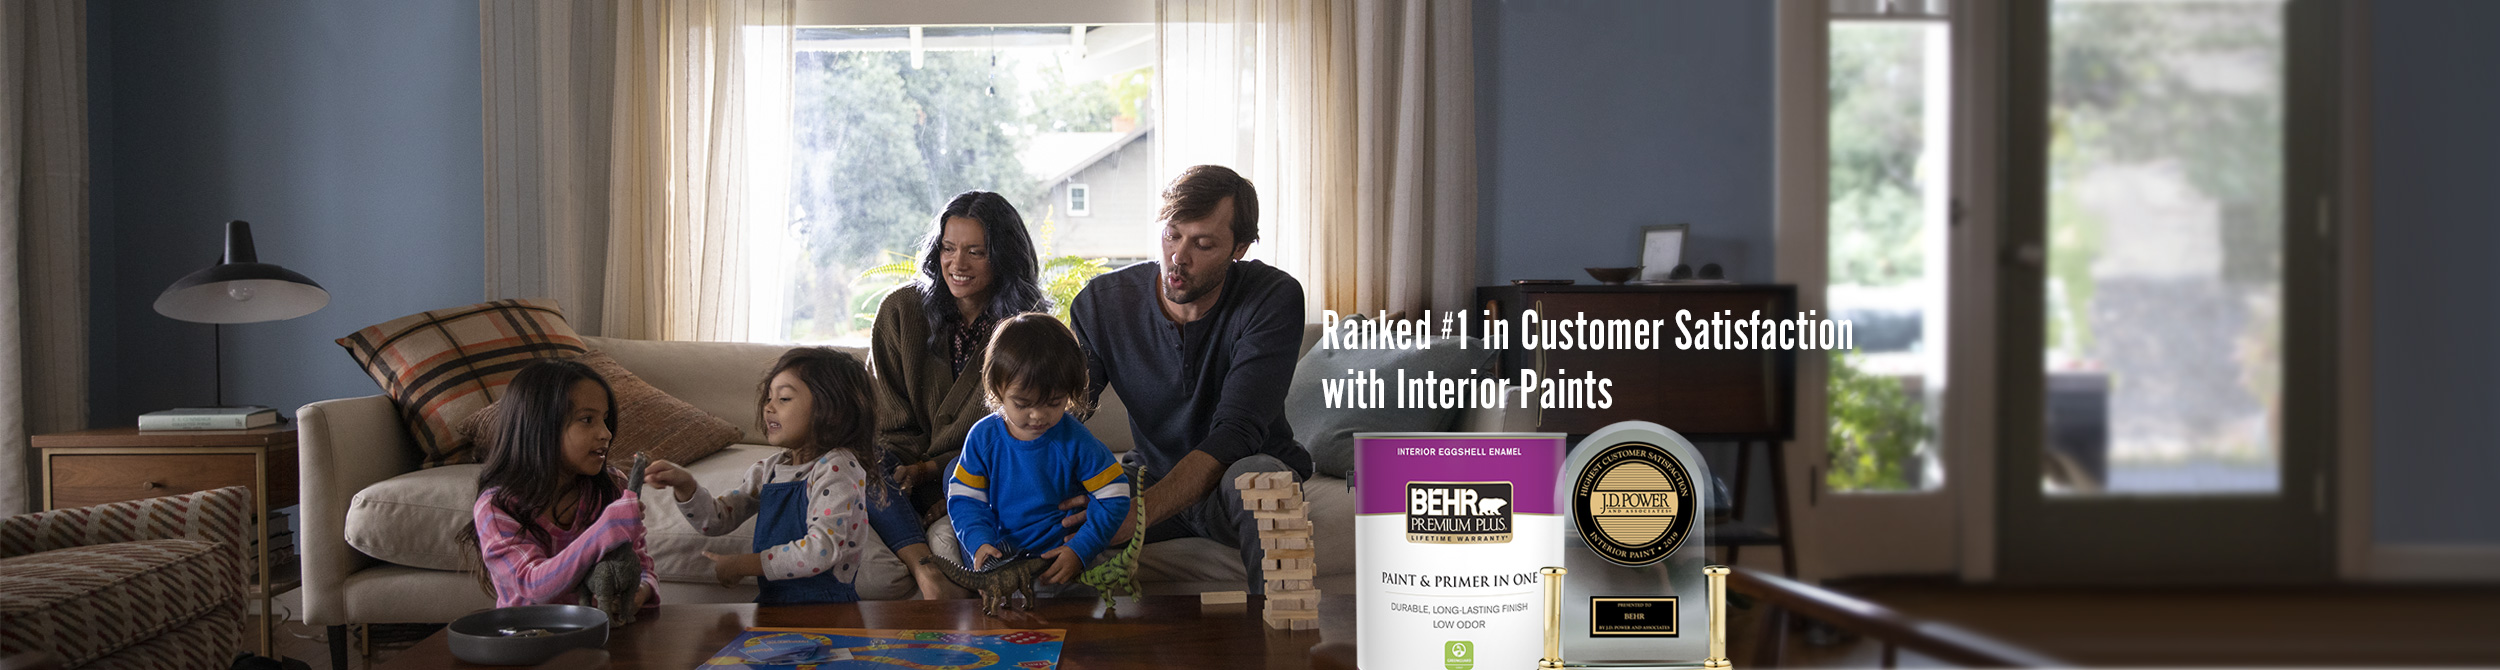 Can of Behr paint and award with family in the living room in the background